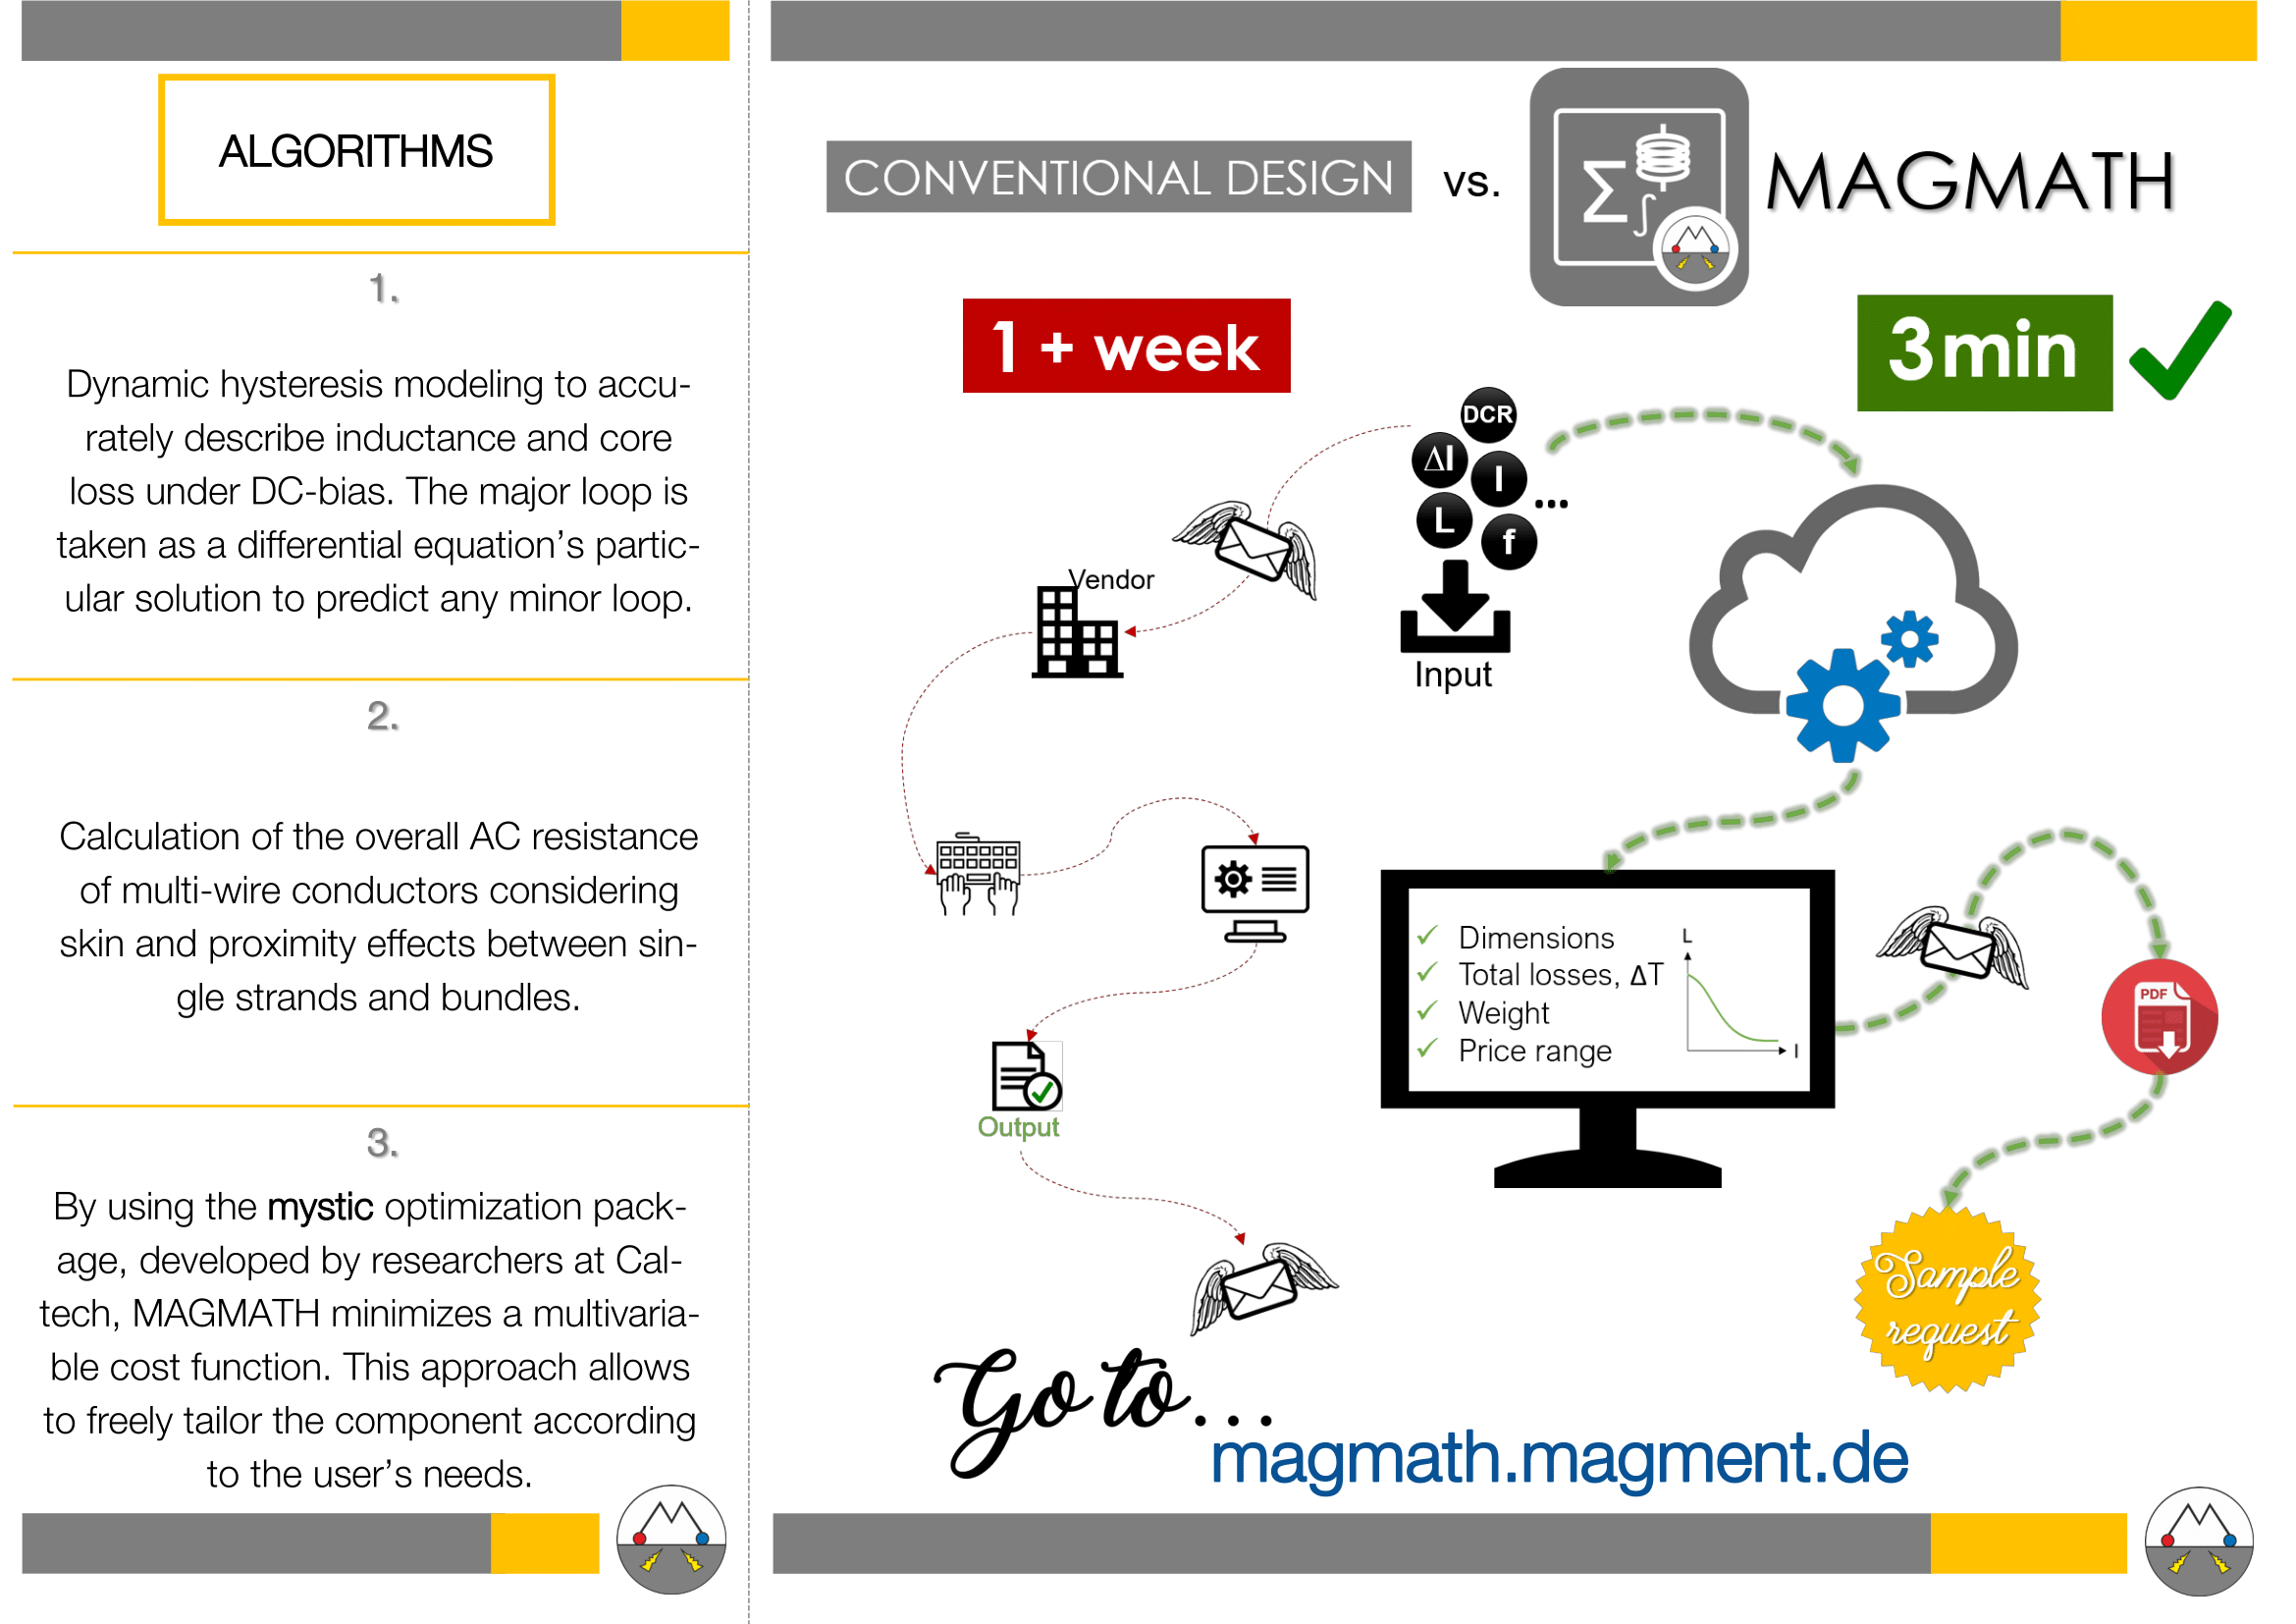 Leaflet - Magmath-2.png